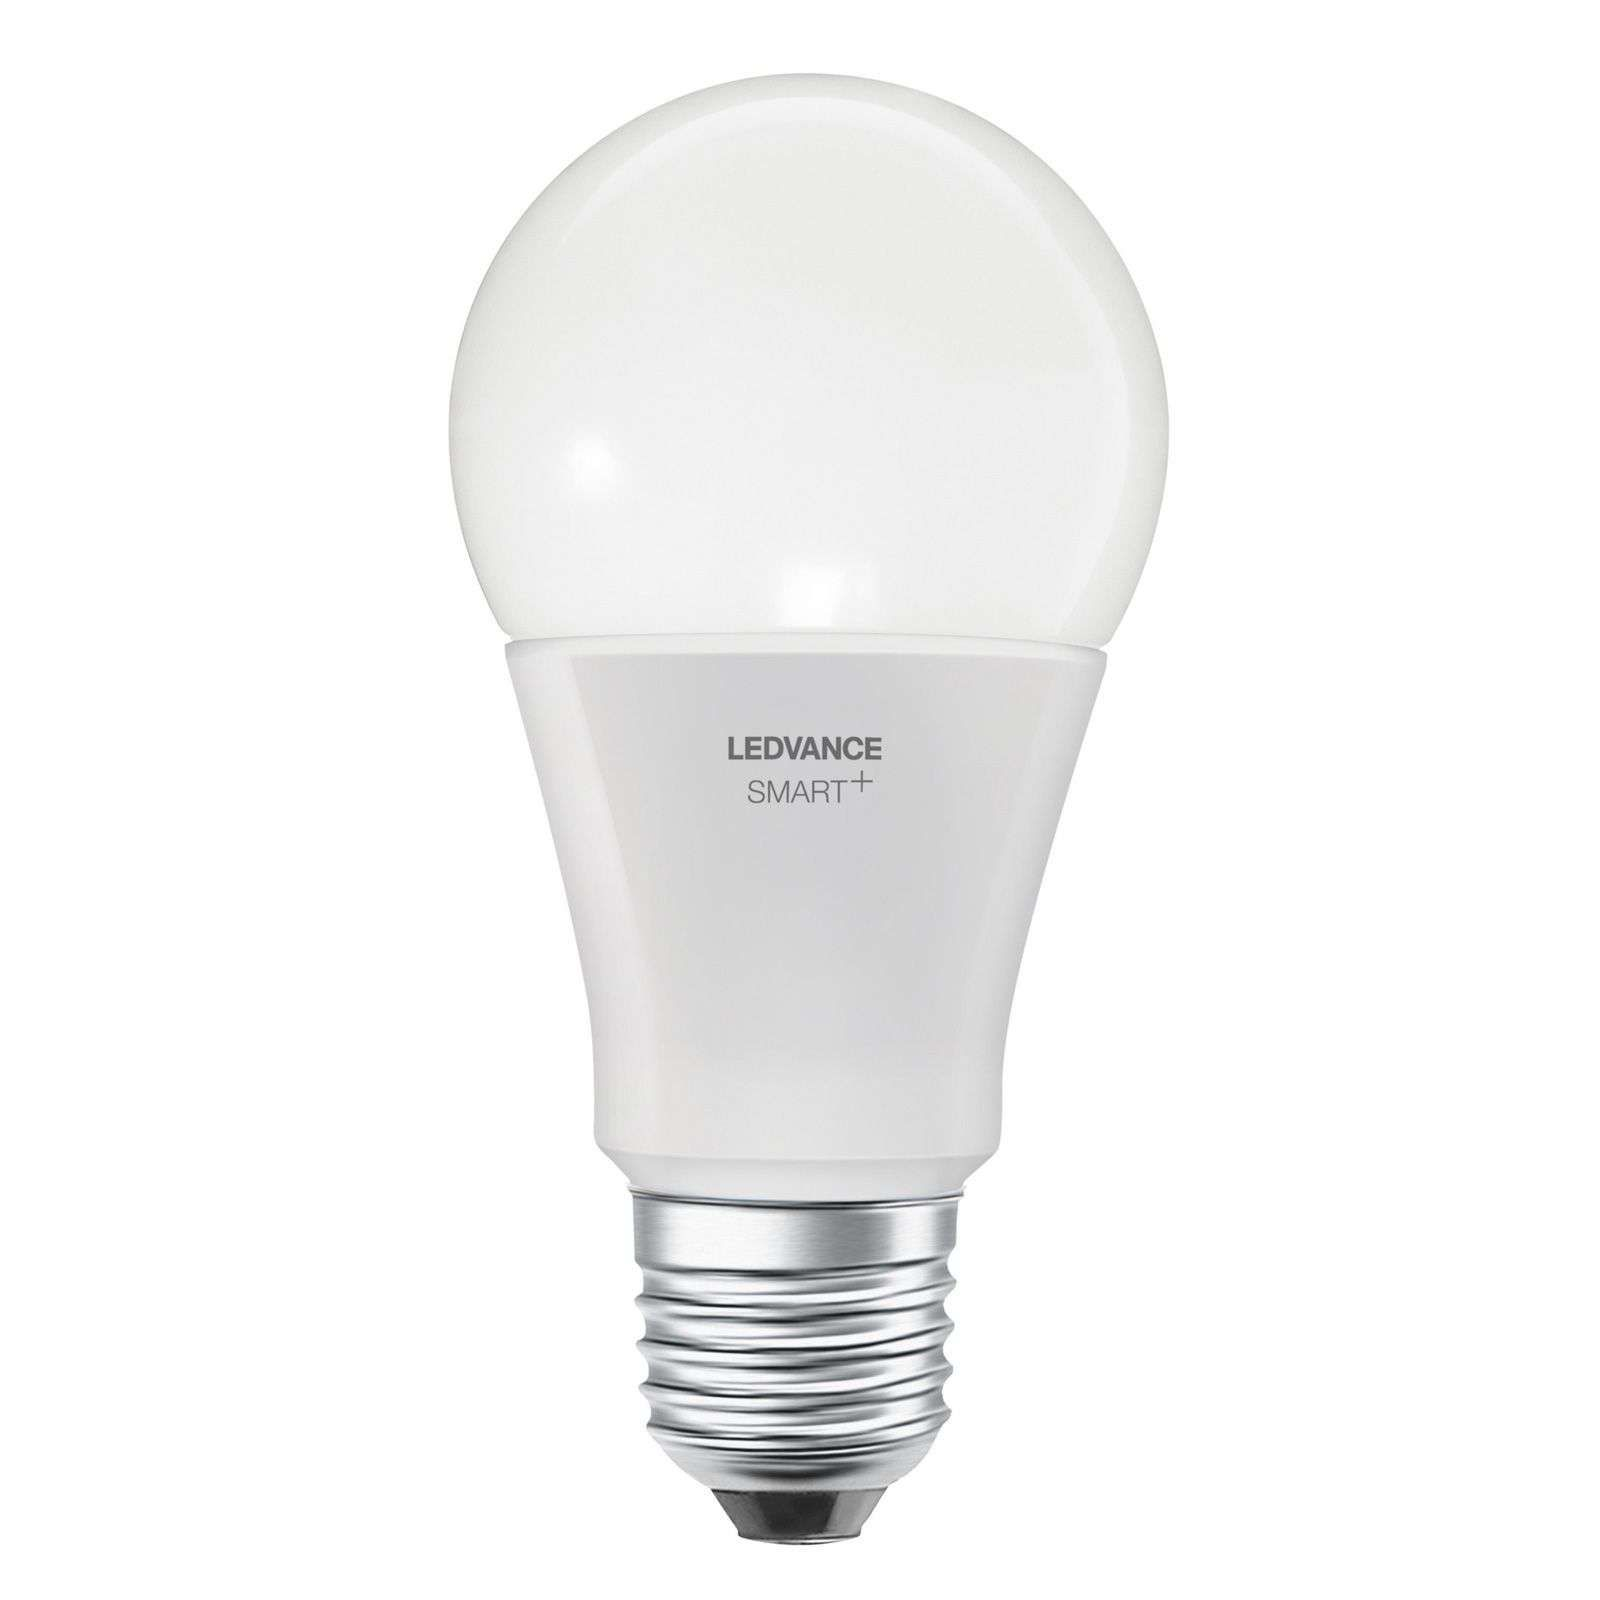 Ledvance Smart Zigbee E27 8 5w Classic 2 700k In 2019 Led Lampe Leuchtmittel Und Bluetooth